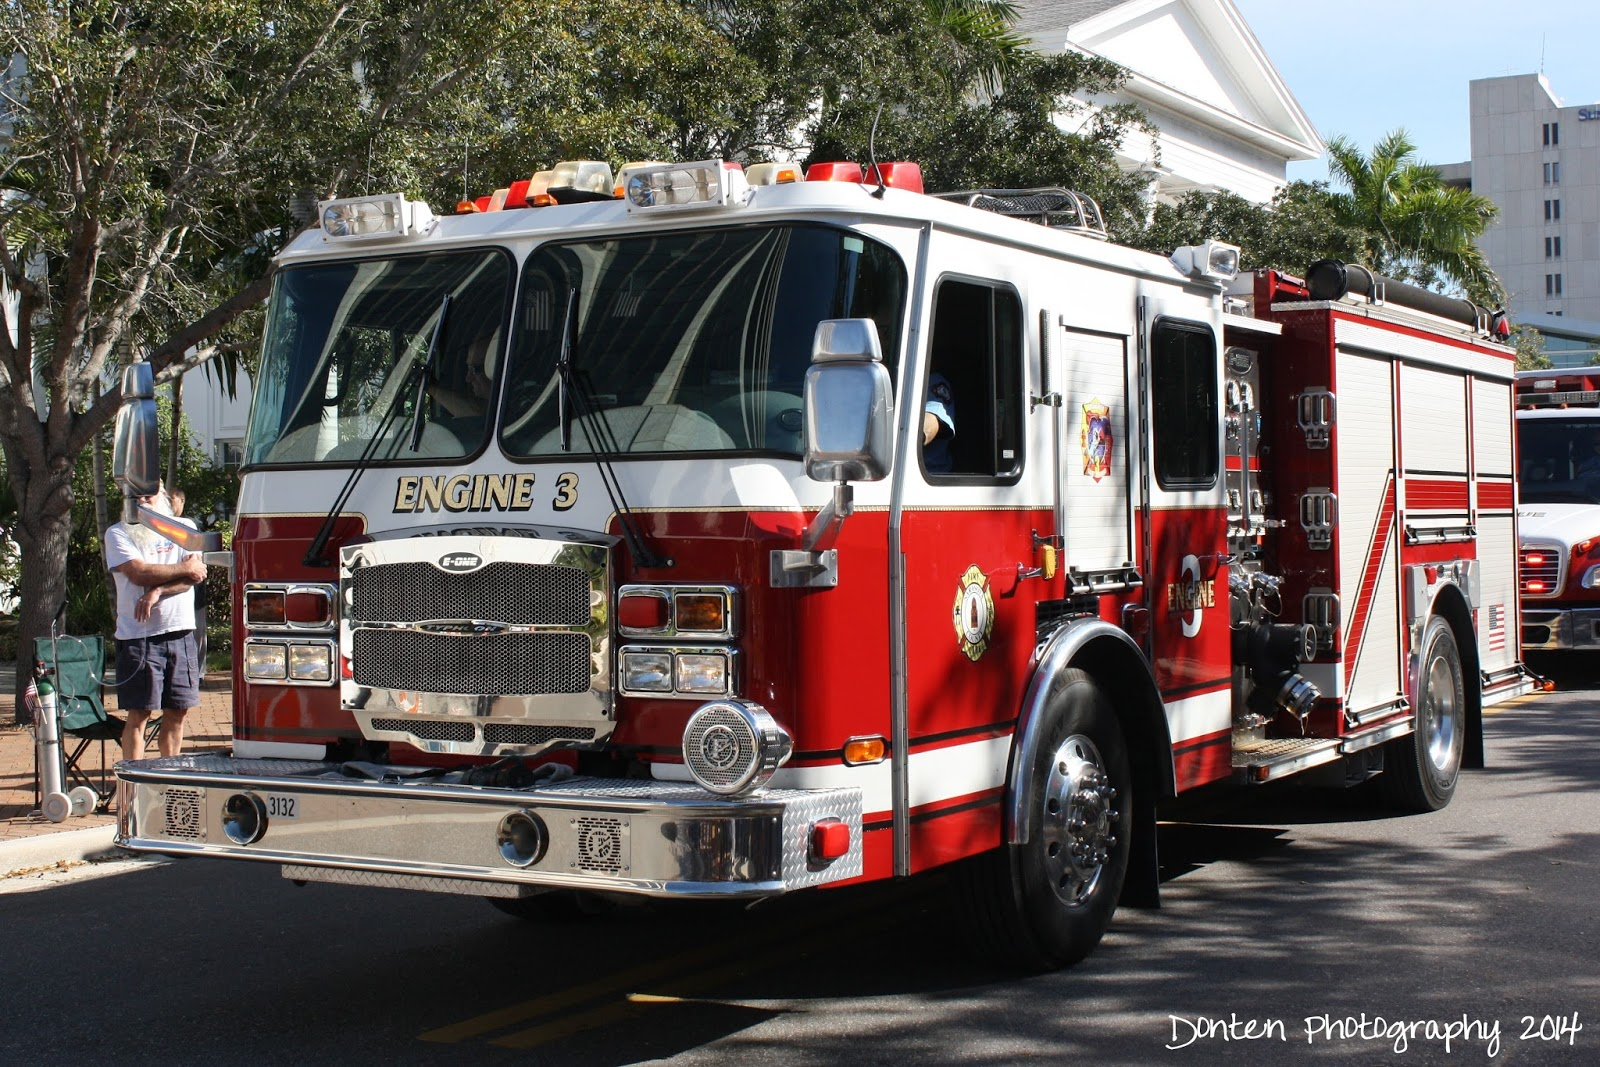 sarasota county fire department  engine 3  donten photography   boots and badges  2014  rh   publicsafetypicsbydonentphotography blogspot